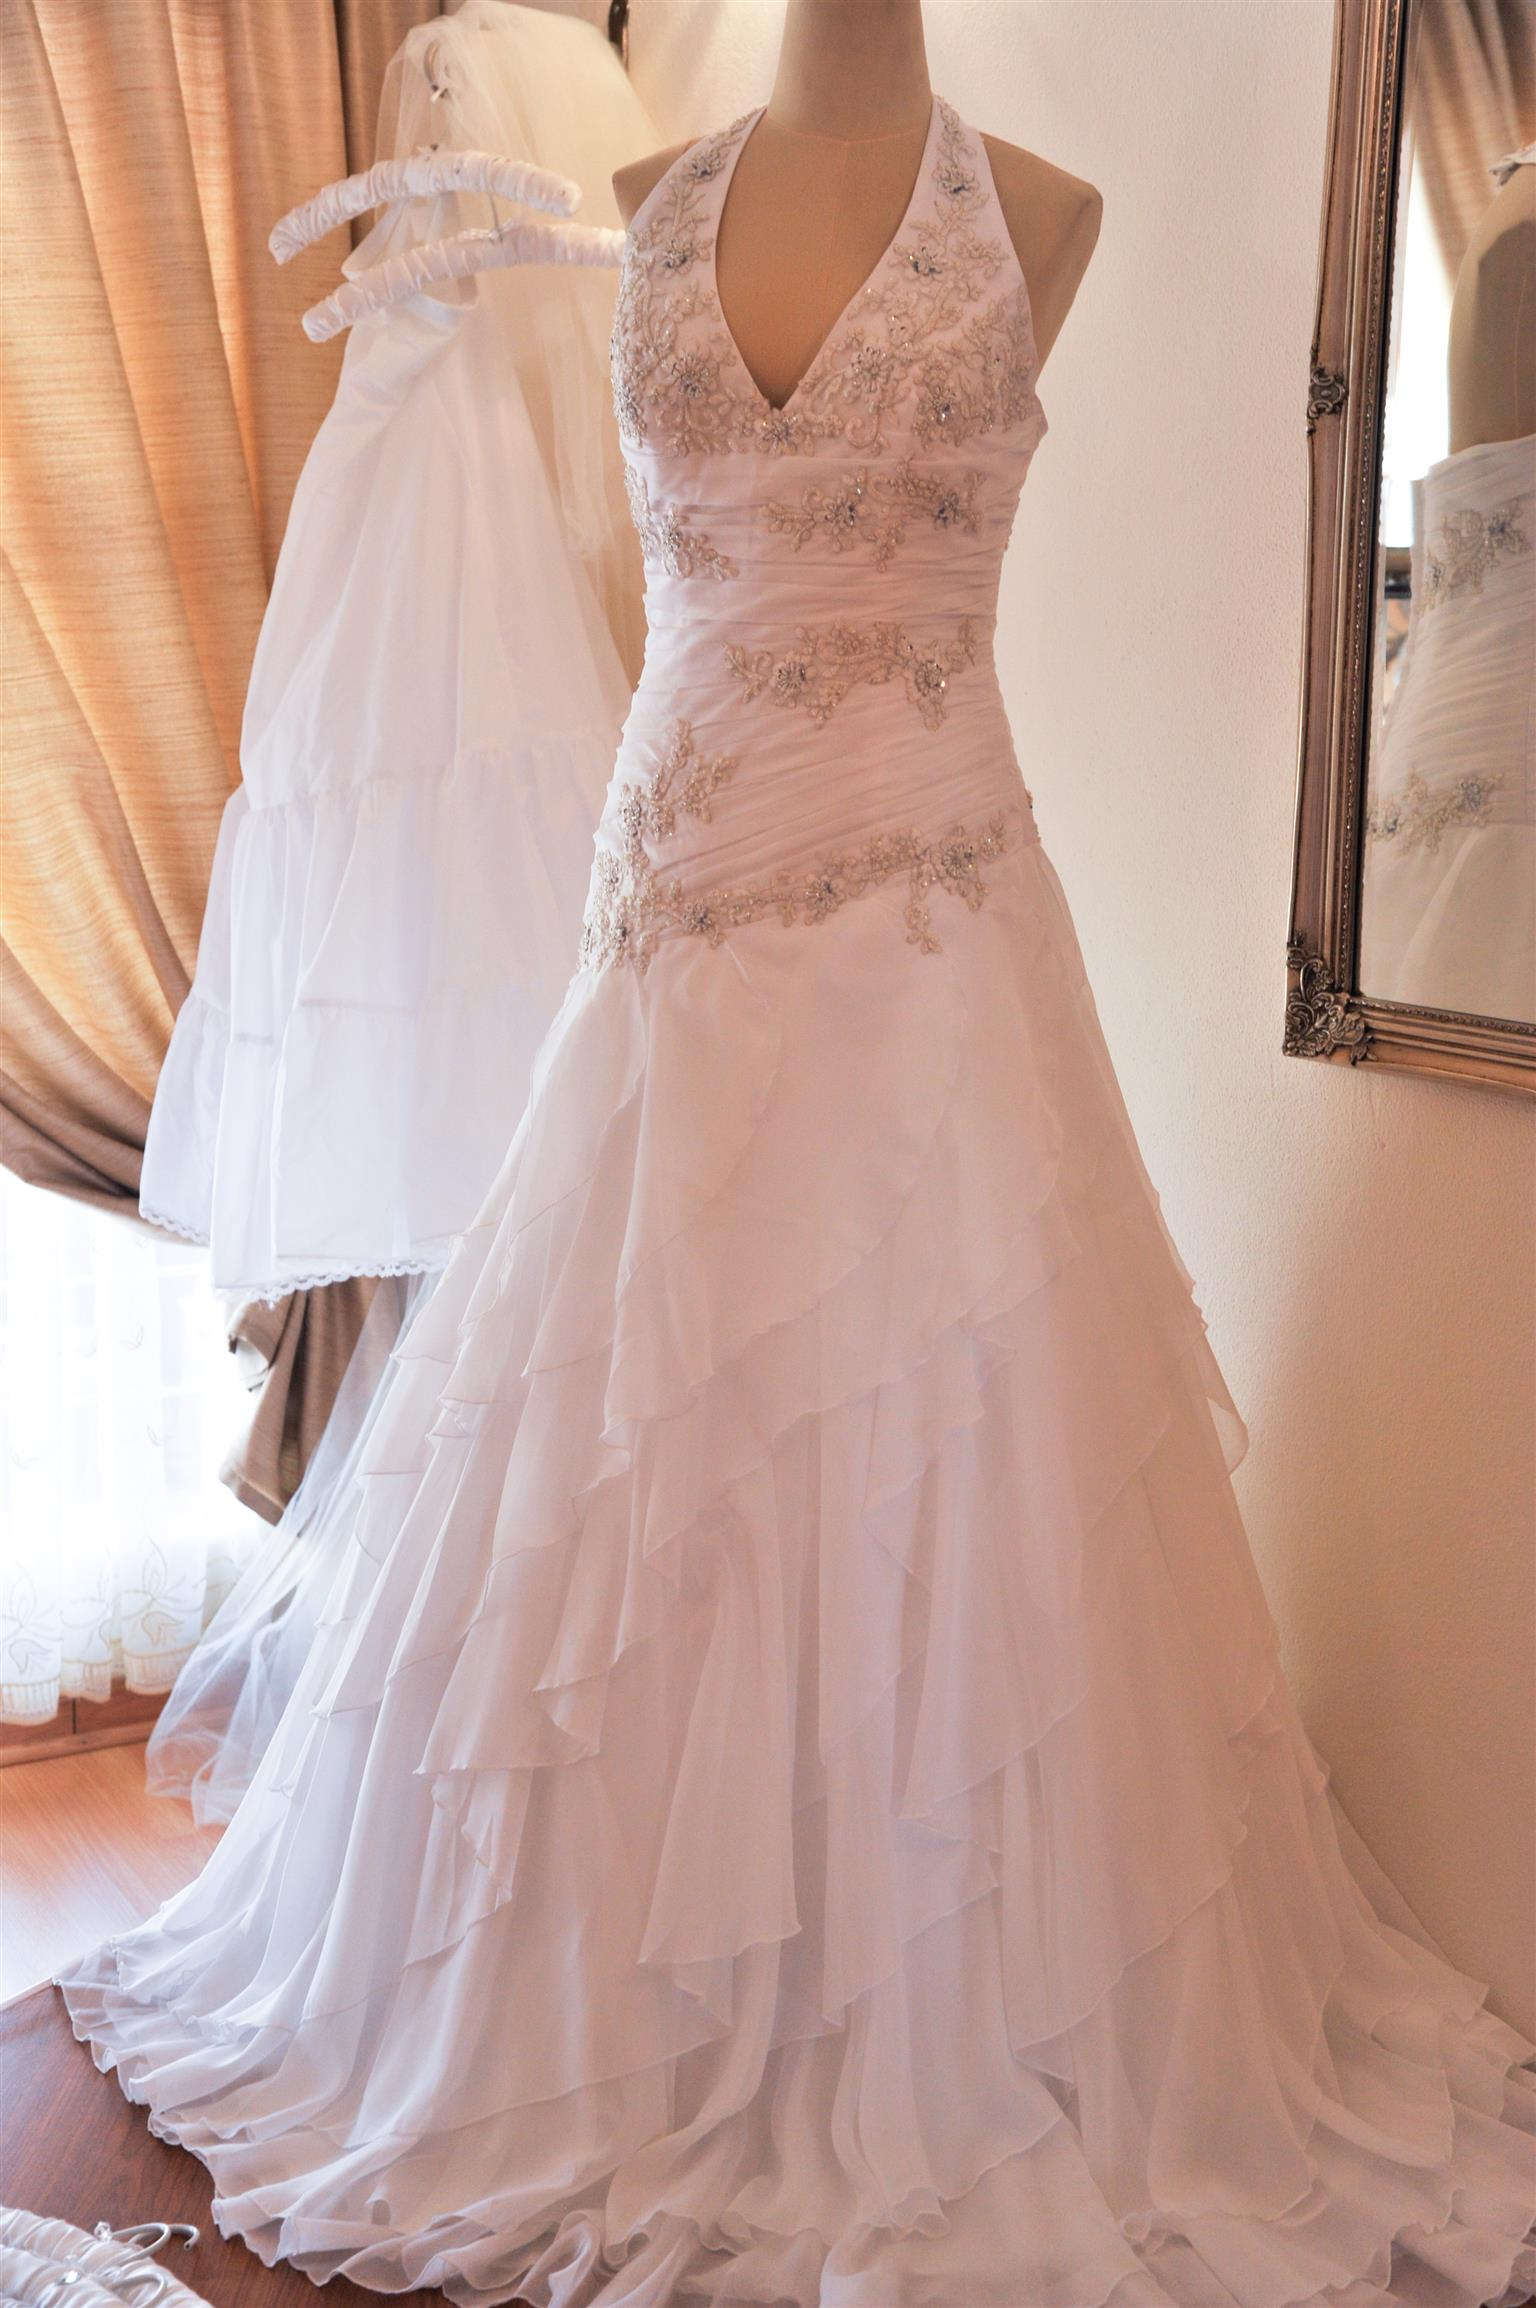 Wedding Dresses for sale: Individually or Going-Rental Business ...